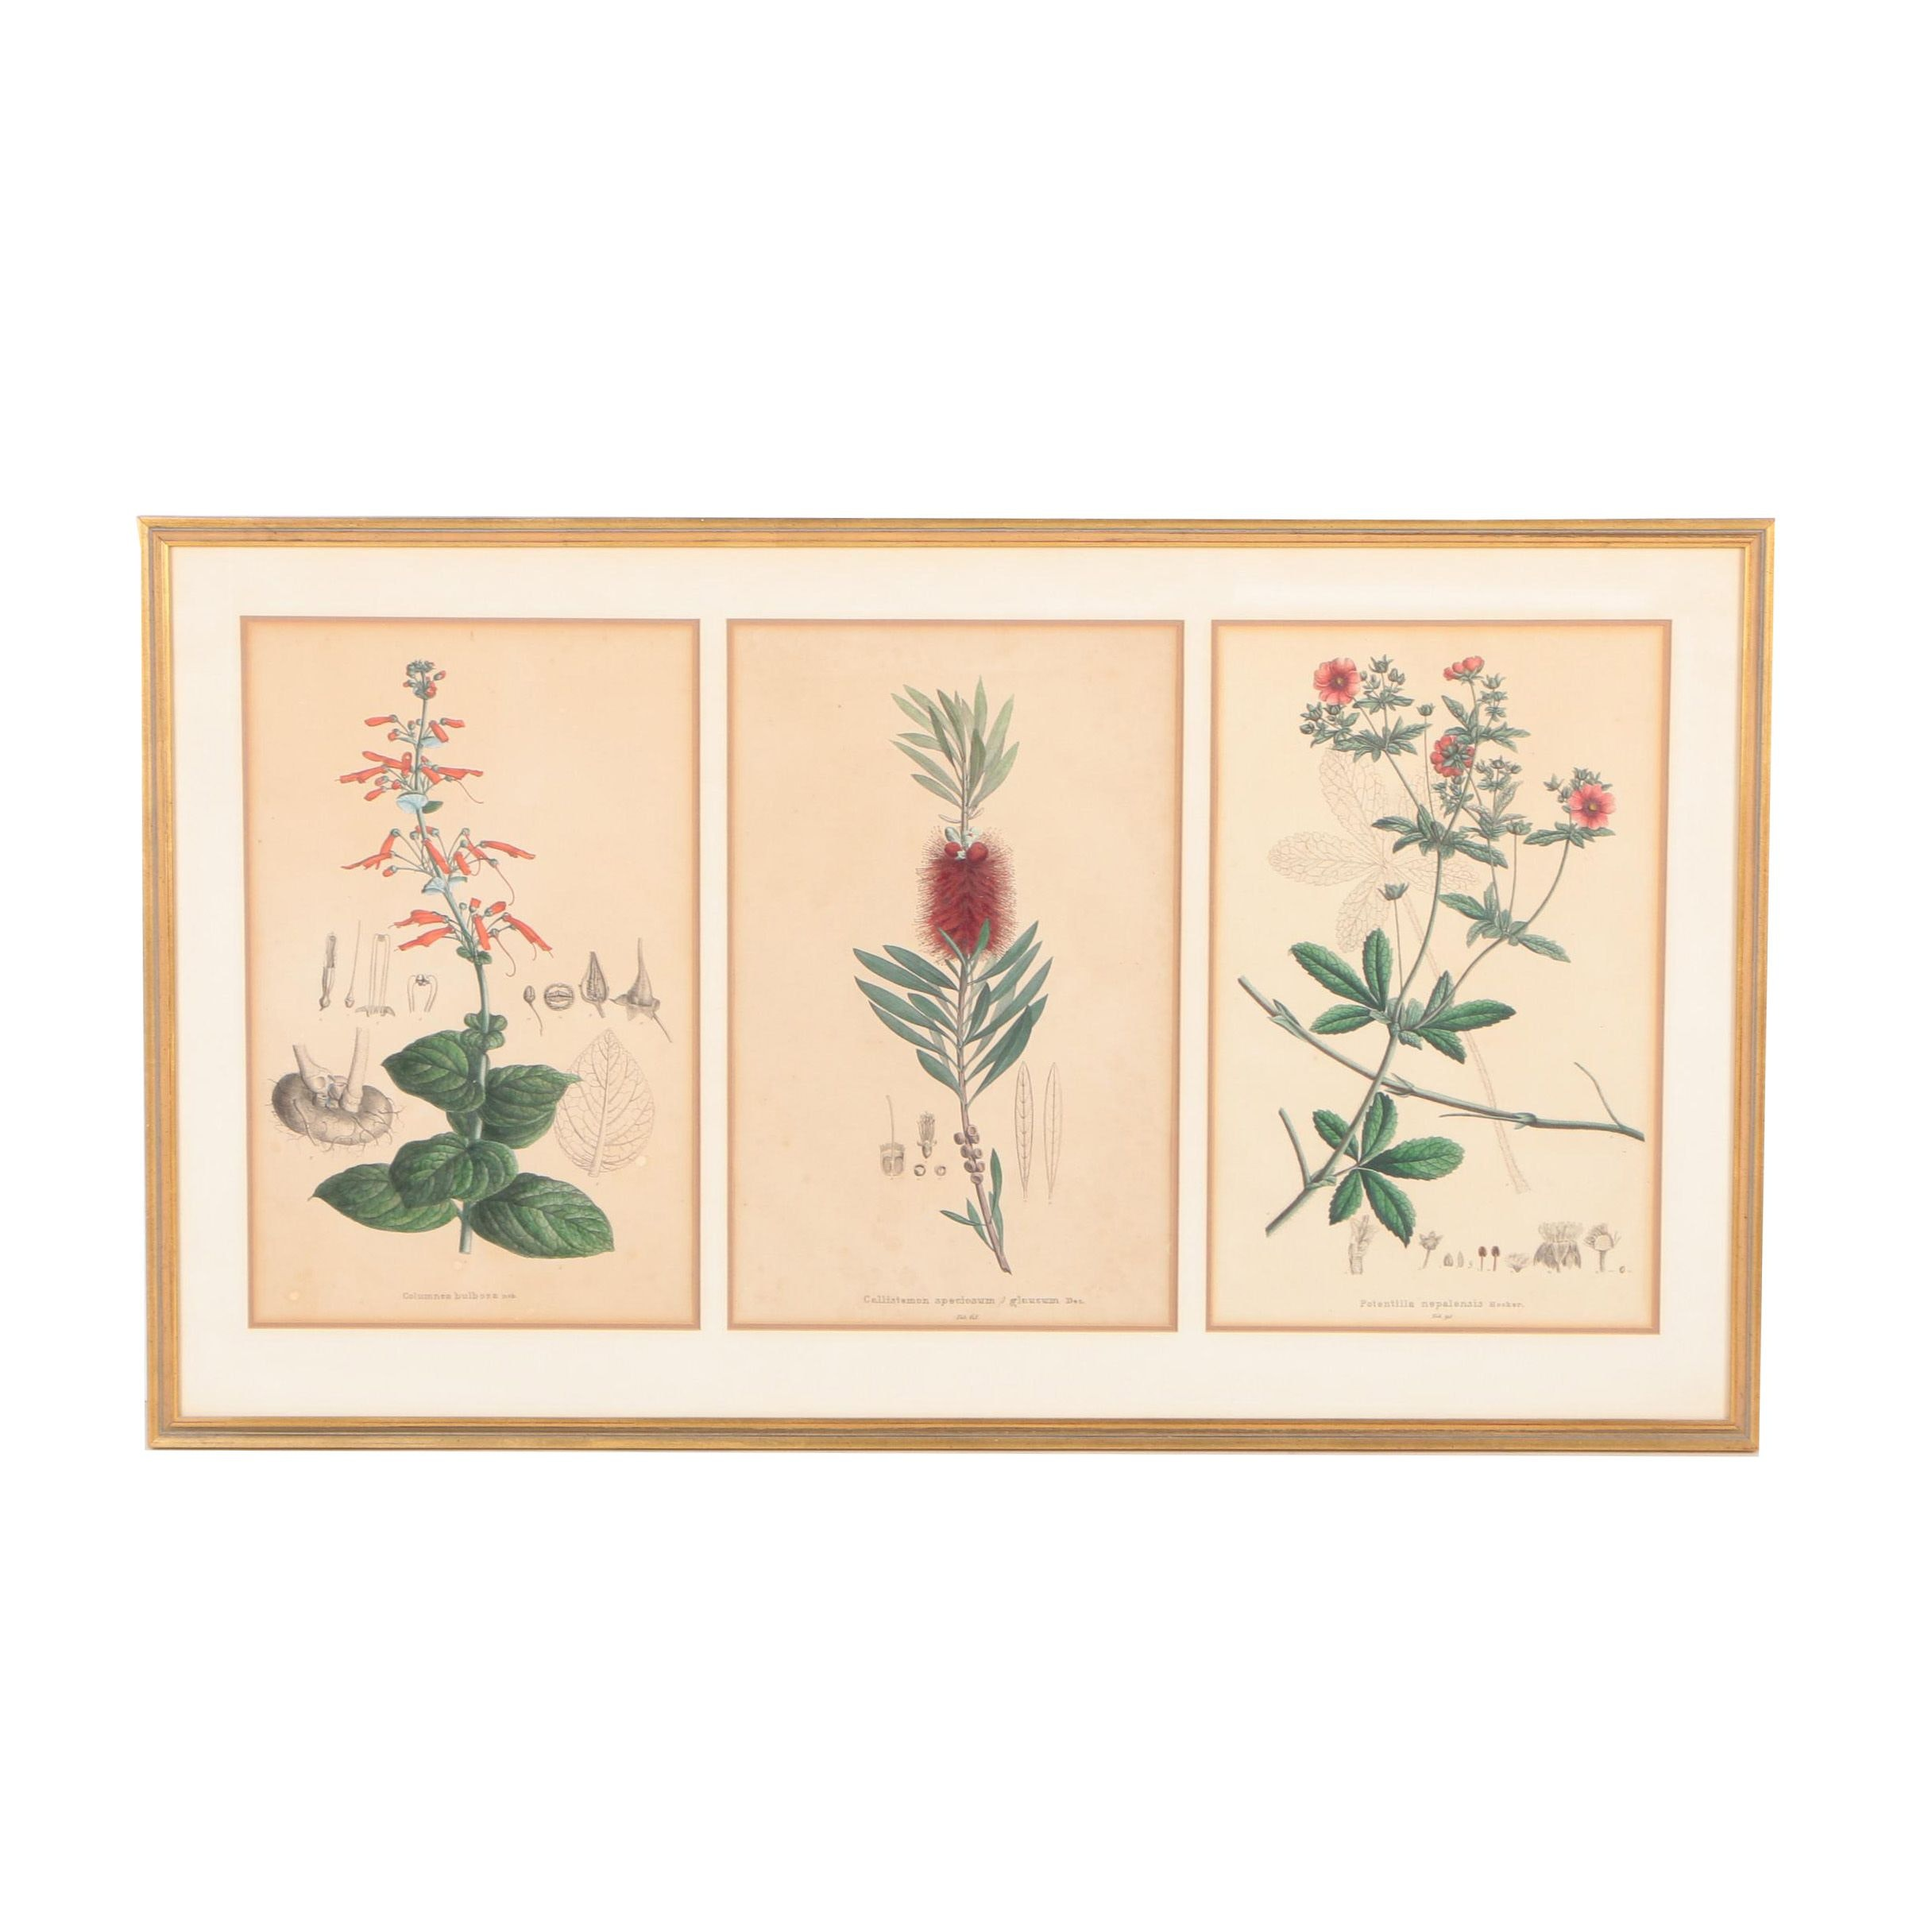 Hand-Colored Lithographs of Botanical Bookplates